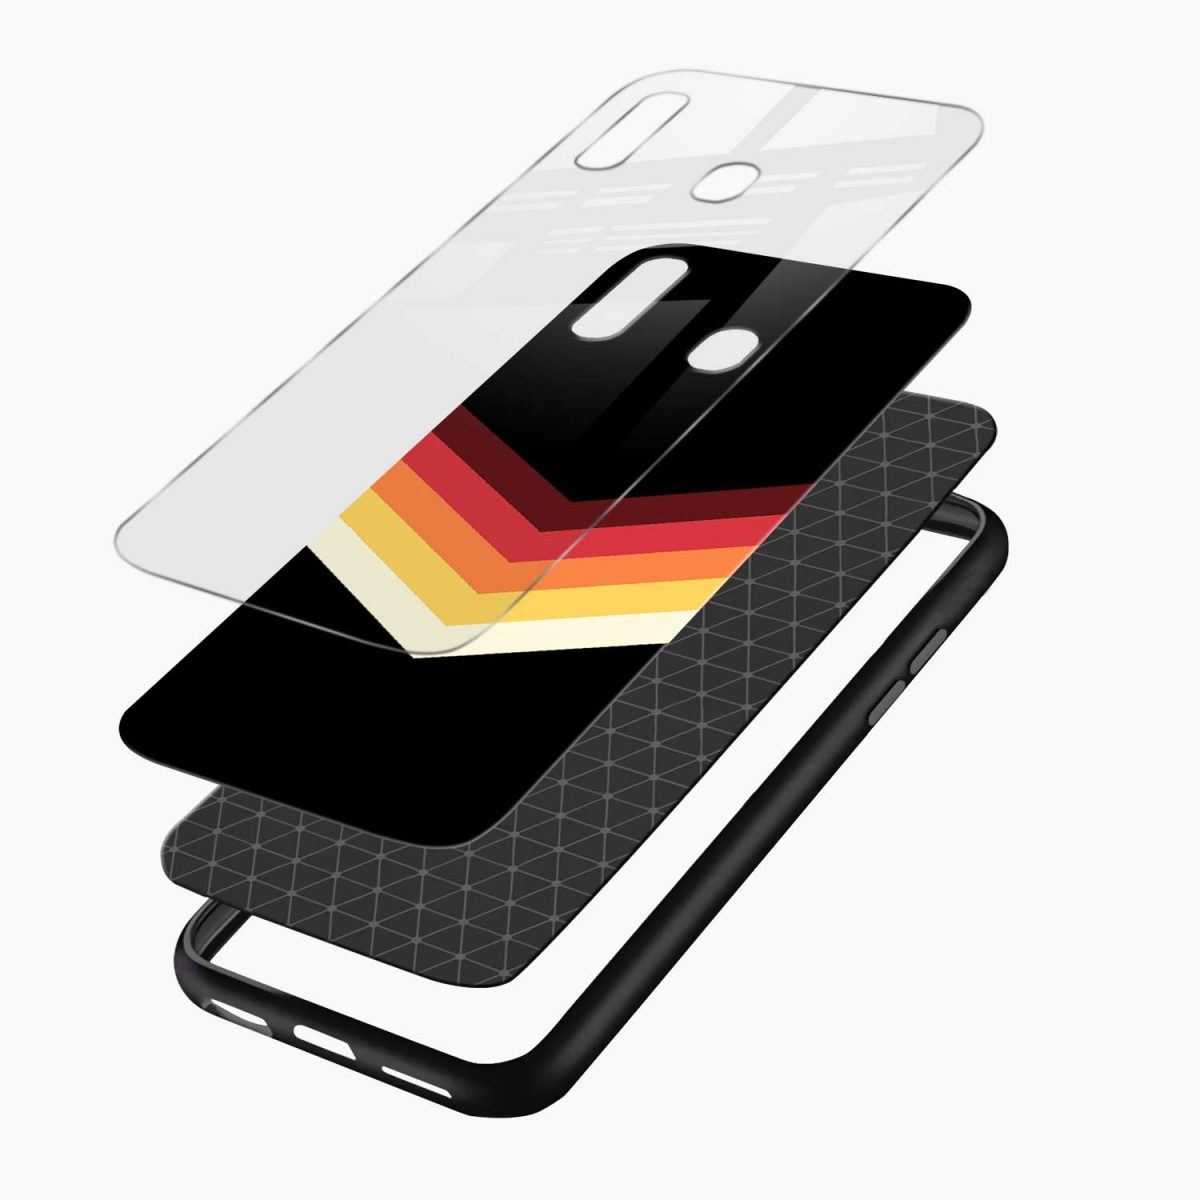 rewind strips pattern layers view samsung galaxy a30 back cover